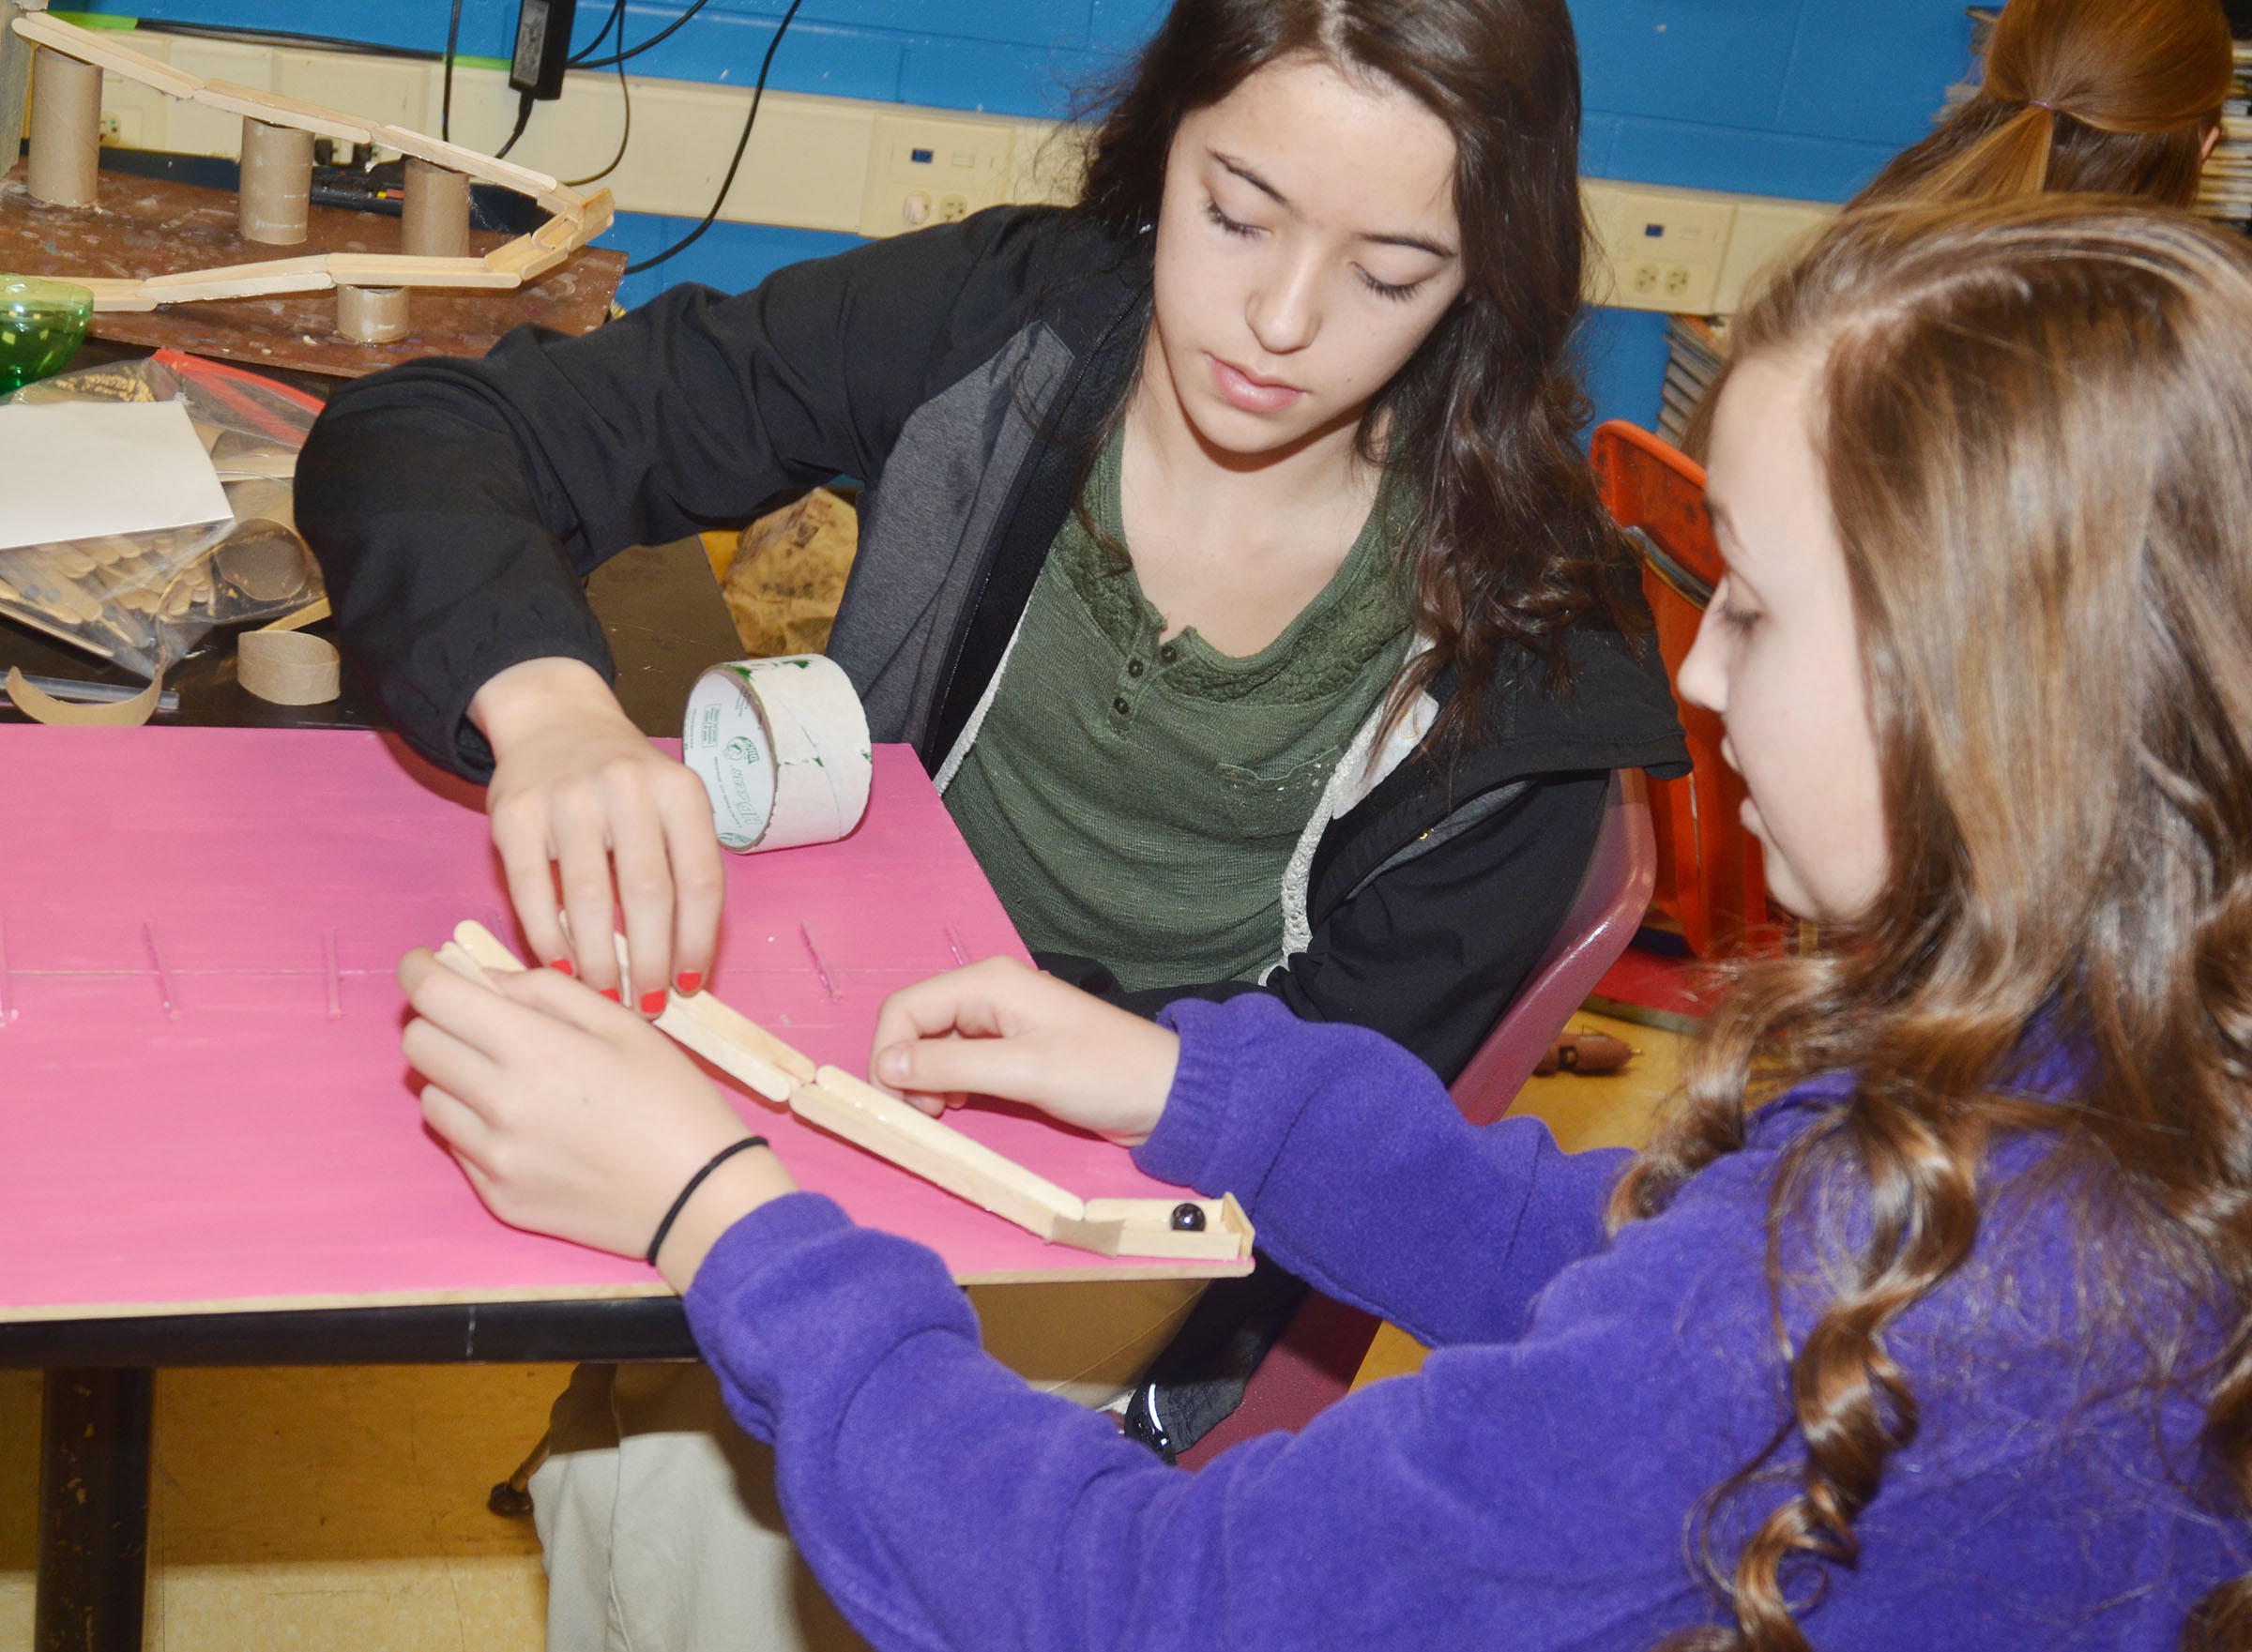 Campbellsville Middle School seventh-graders Kaylyn Smith, at left, and Lainey Watson work together to build their ball dropper machine.